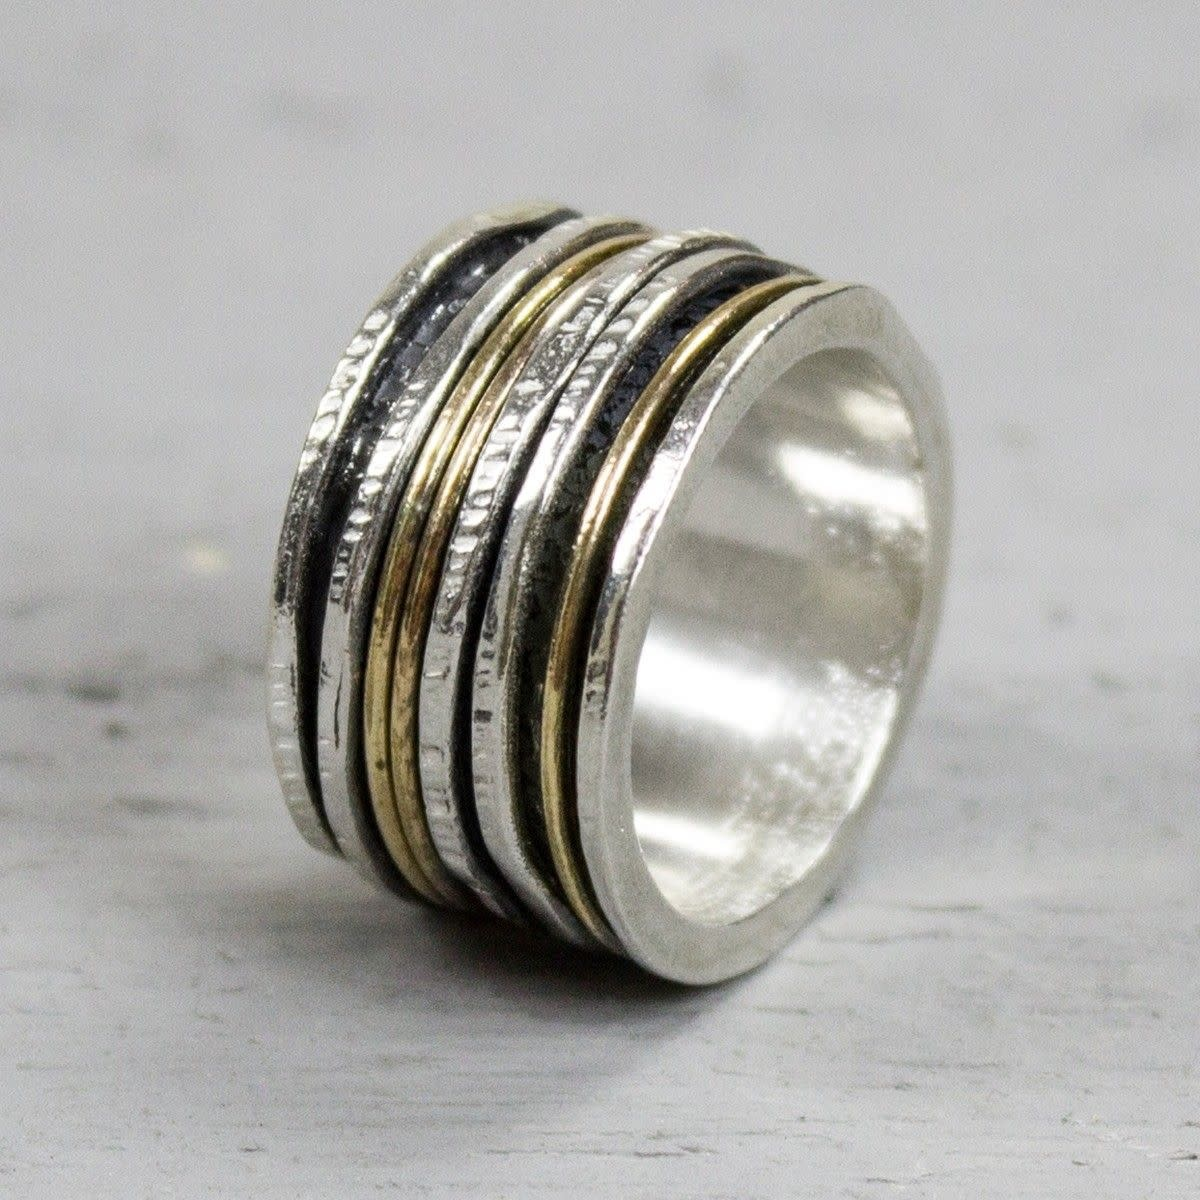 Ring Silver + Gold Filled 19436-11